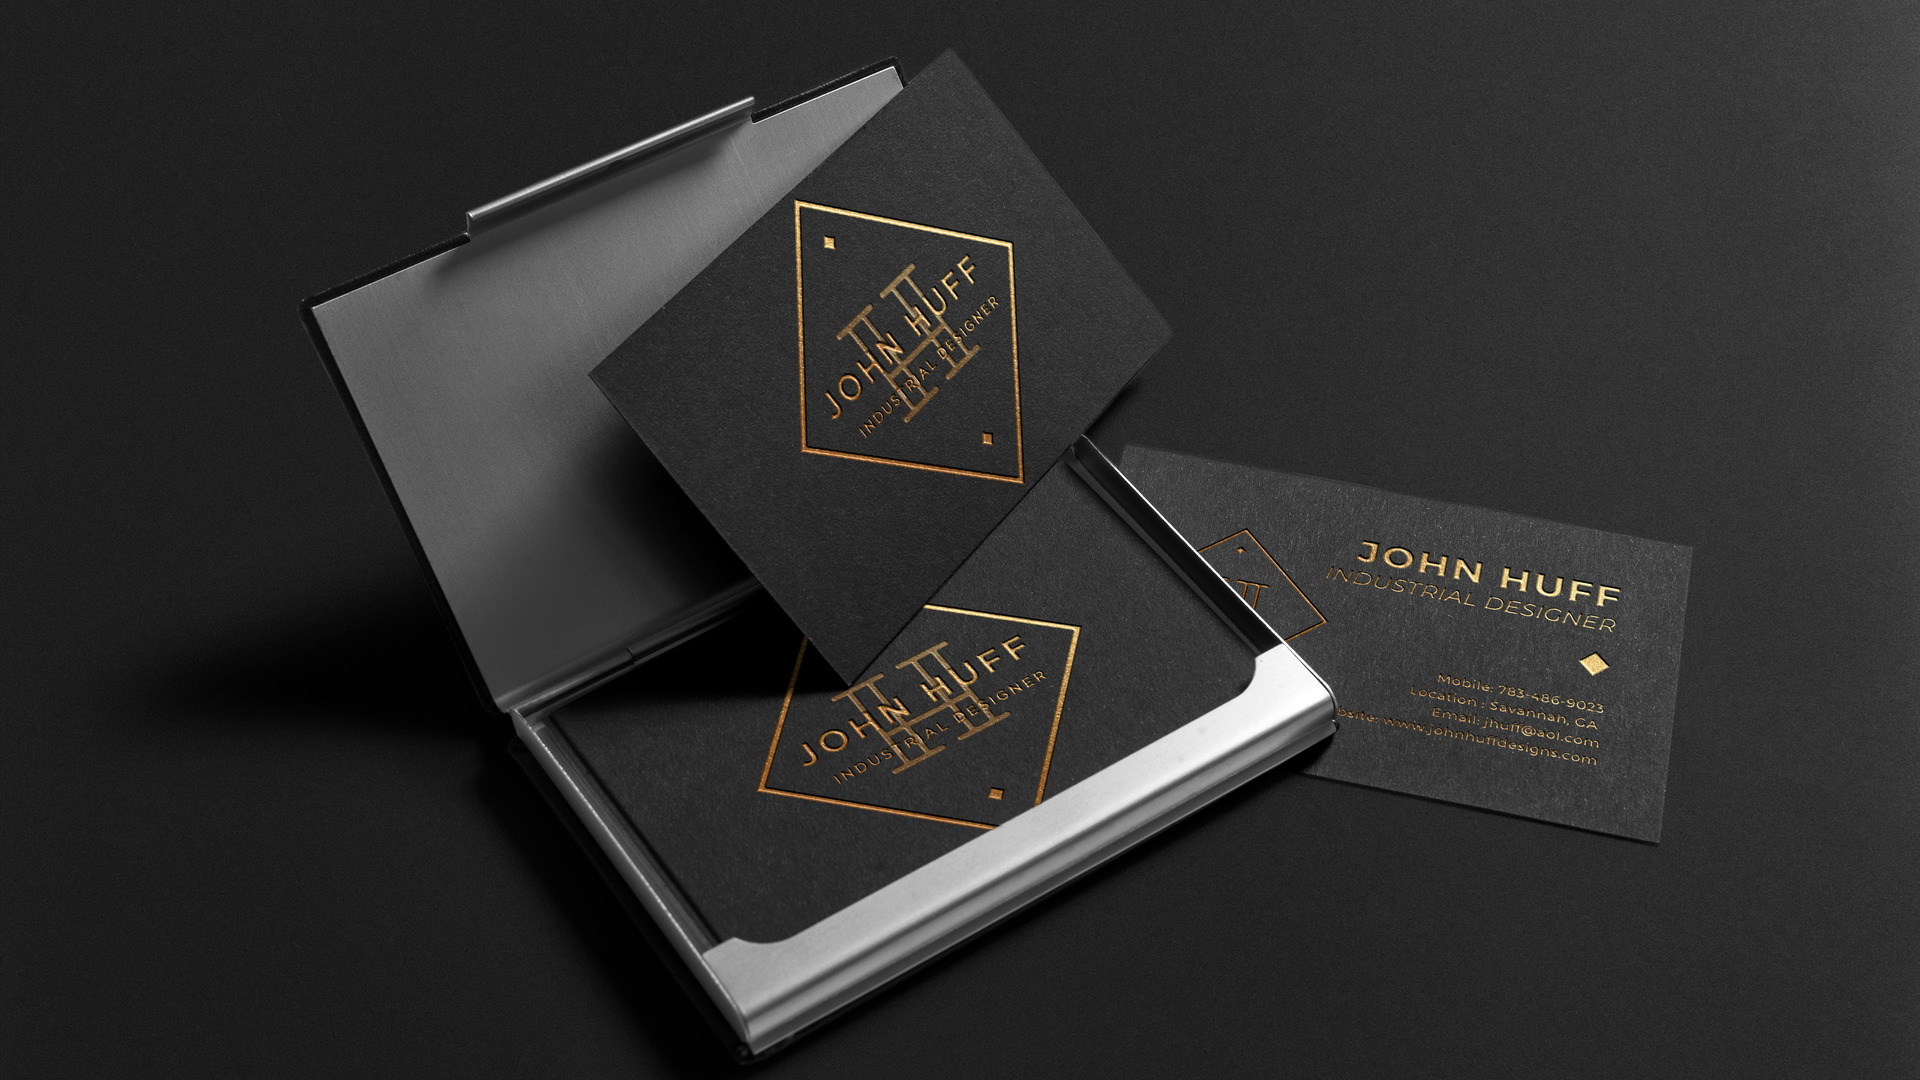 John Huff Business Card